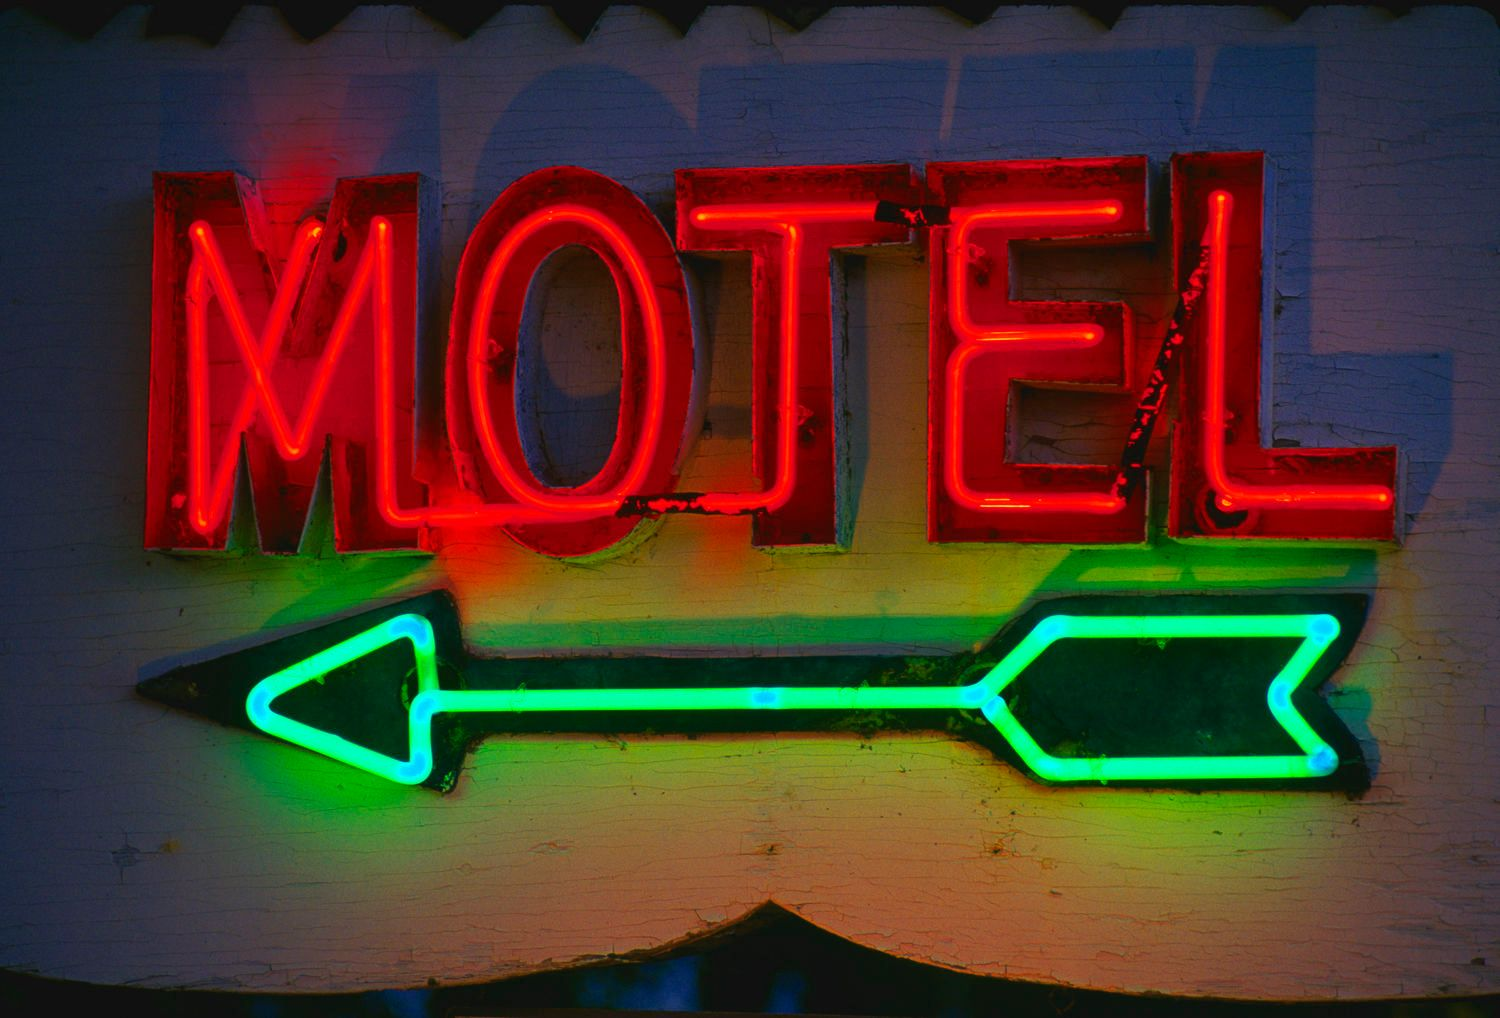 Neon Motel Sign and with green arrow